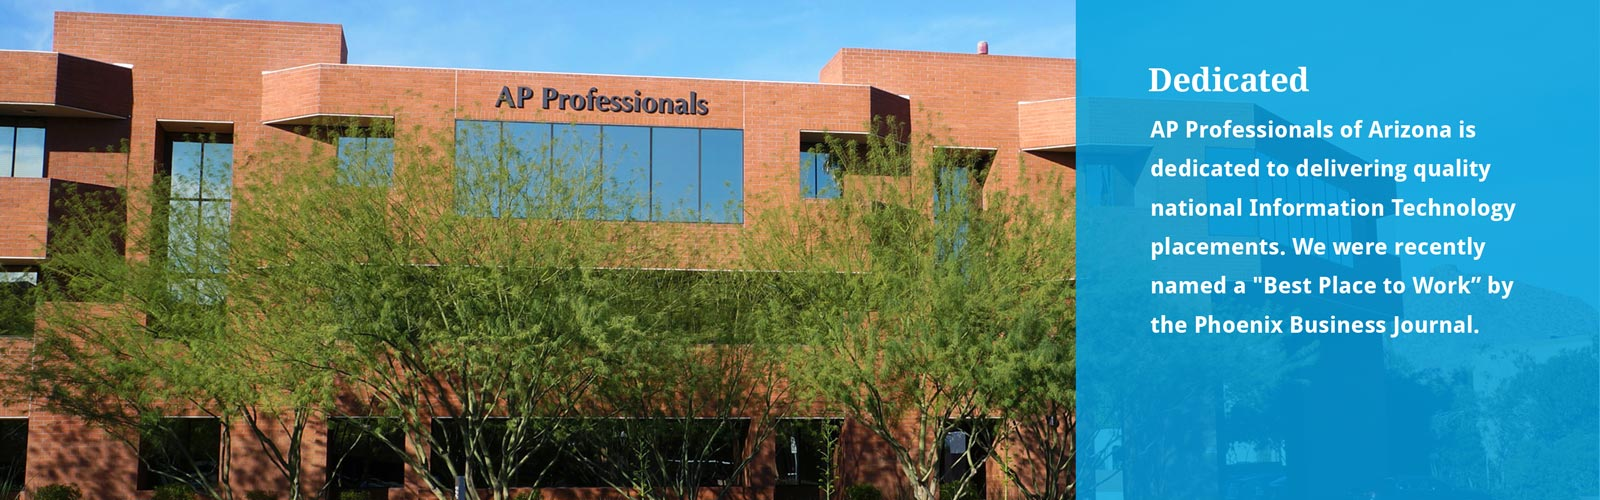 AP Professionals Arizona Office Entrance